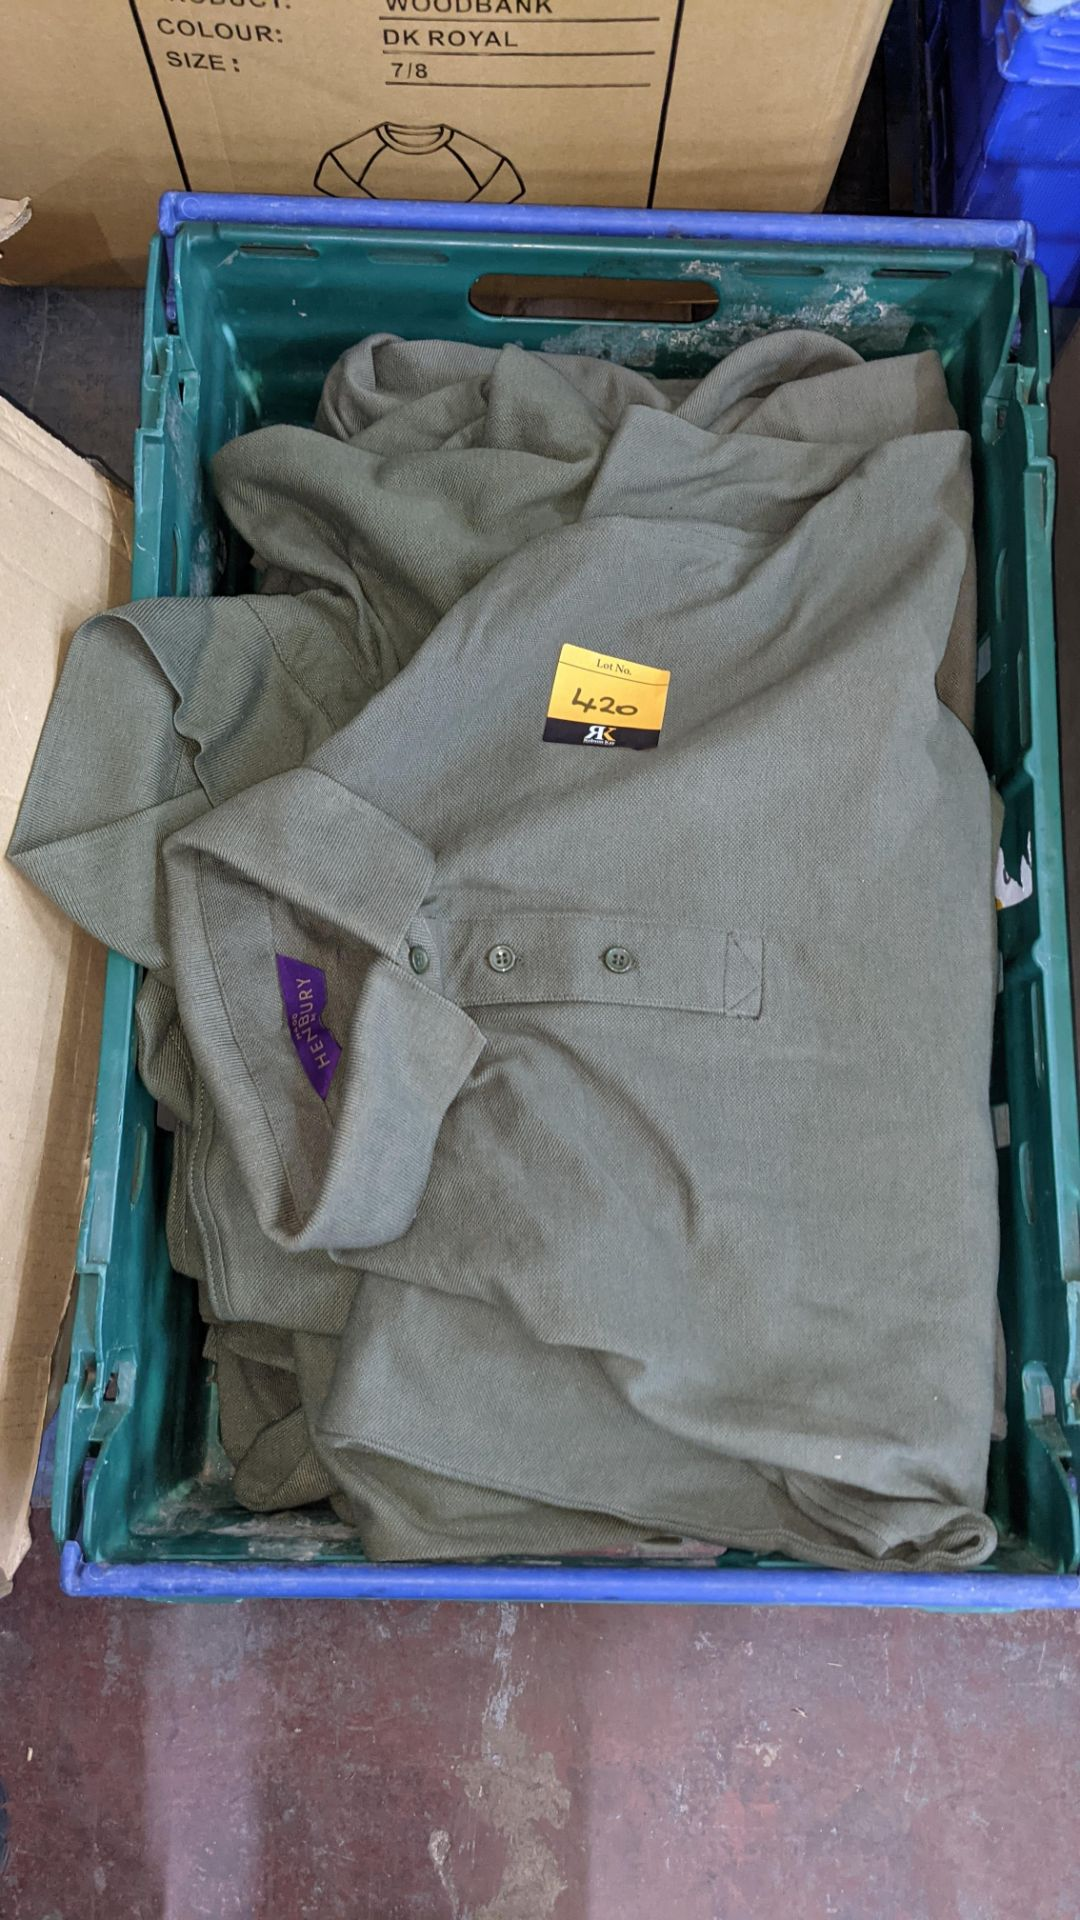 Approx 10 off green polo shirts - Image 2 of 4